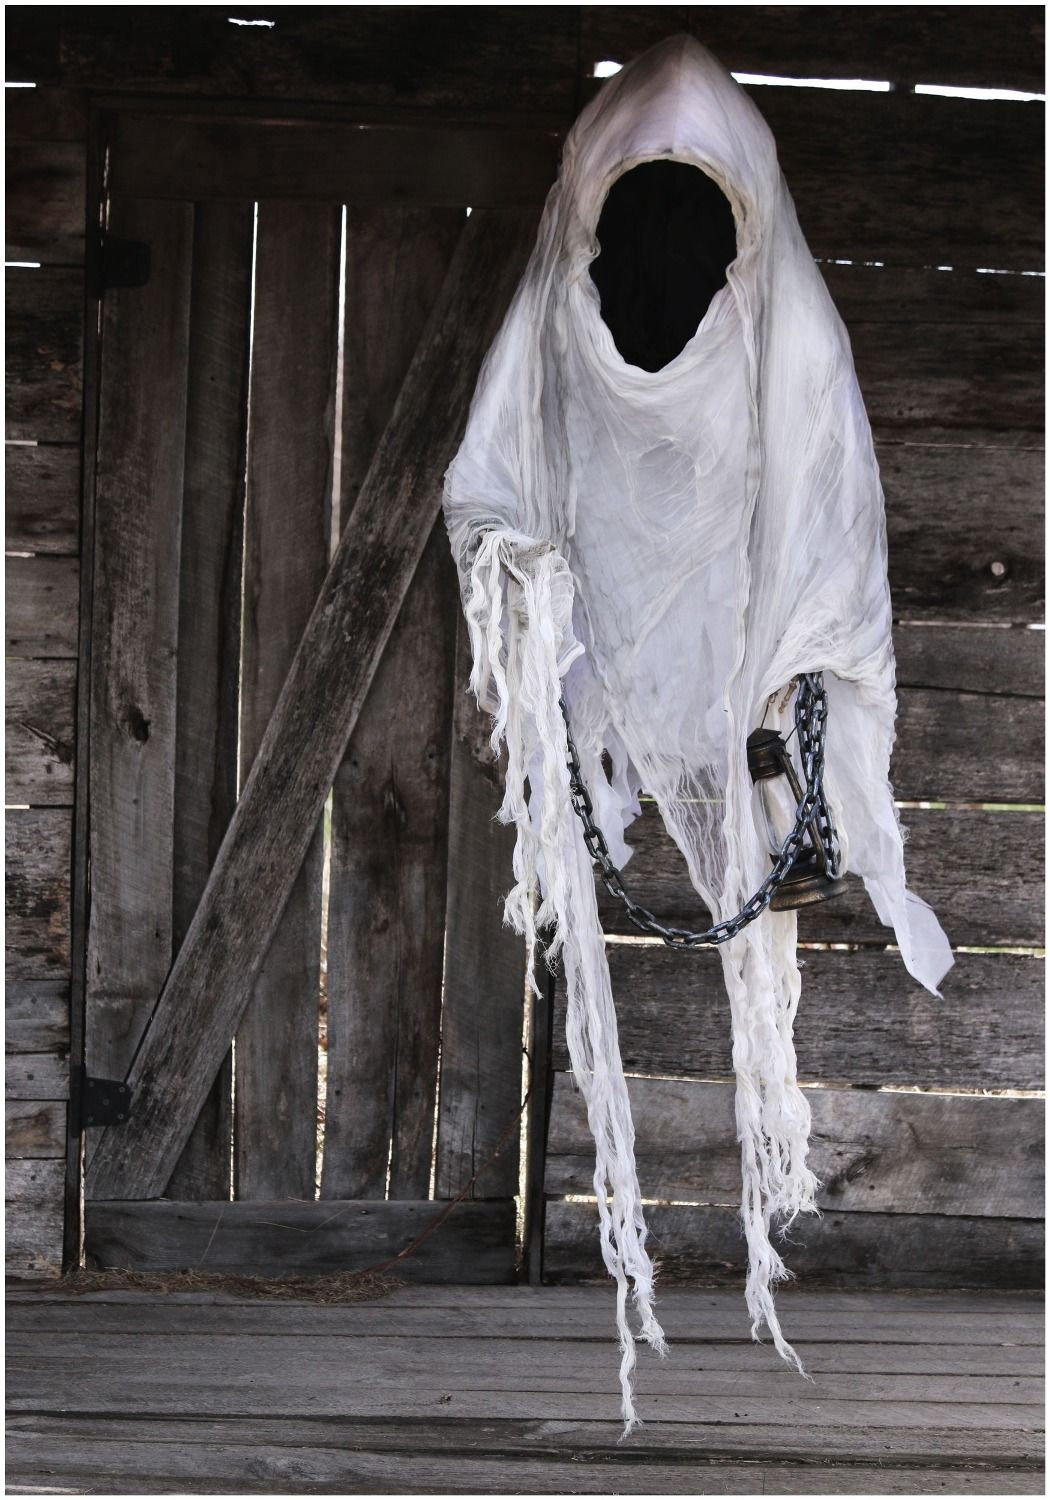 40+ funny & scary halloween ghost decorations ideas | halloween